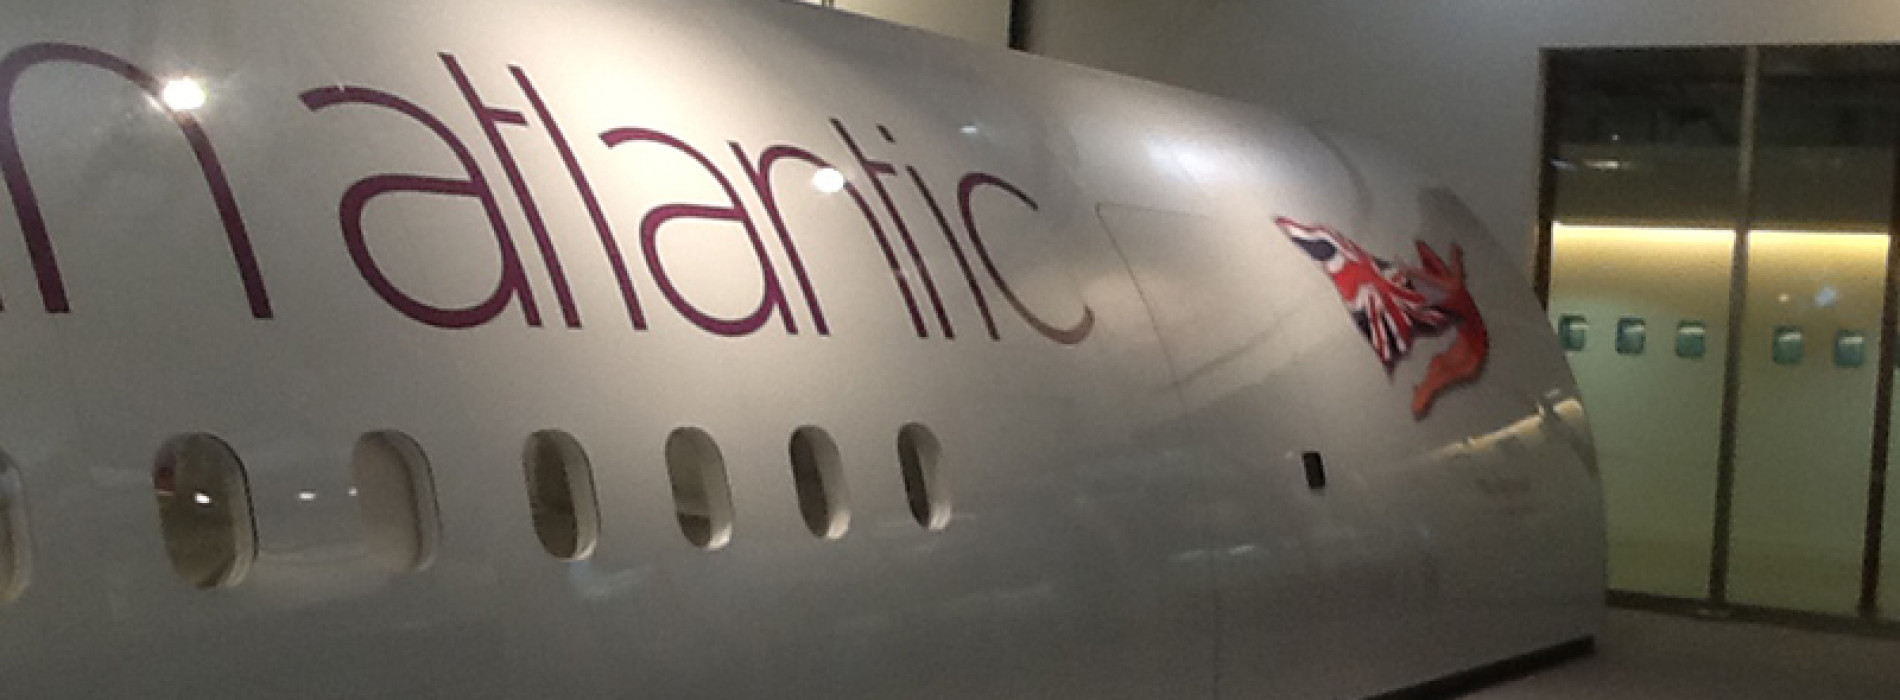 Q&A with Geraldine Lundy of Virgin Atlantic: disability and accessiblilty